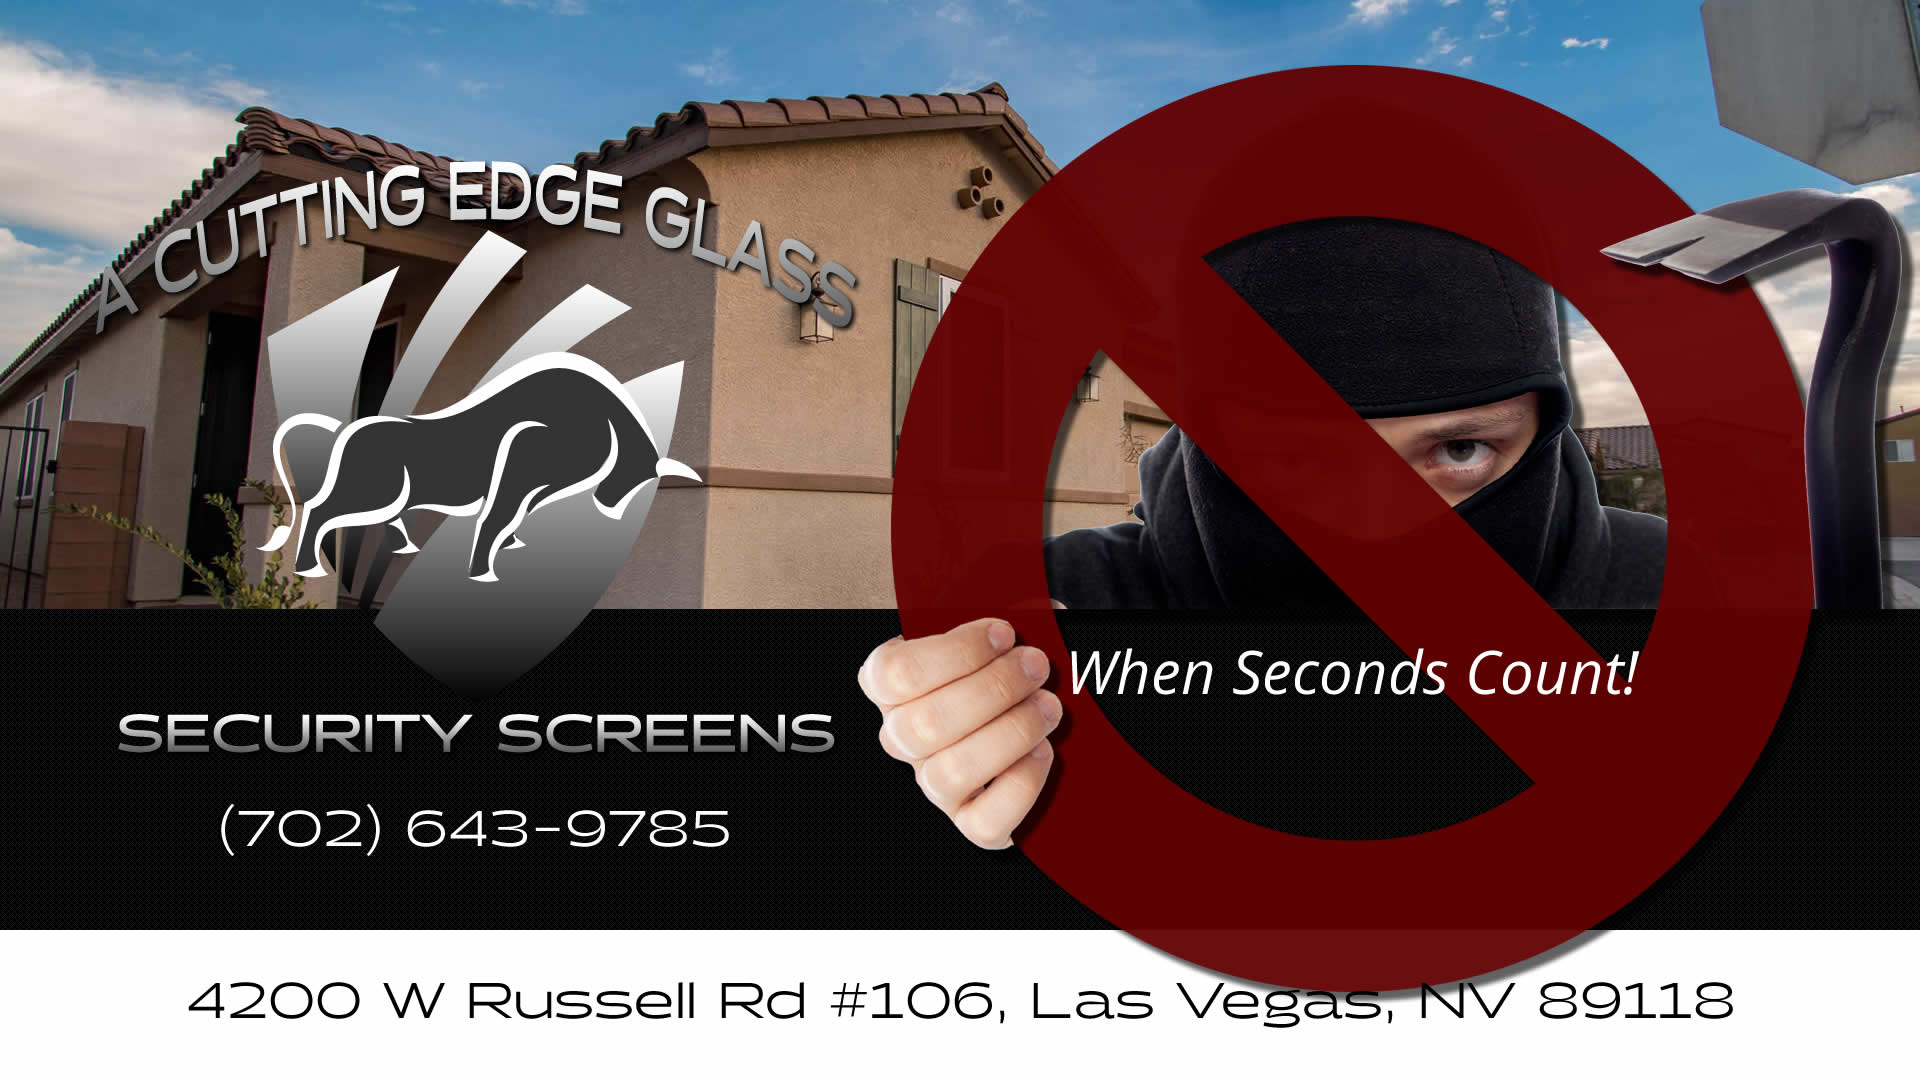 A Cutting Edge Glass & Security Screens Promo - Your Home Security Specialists